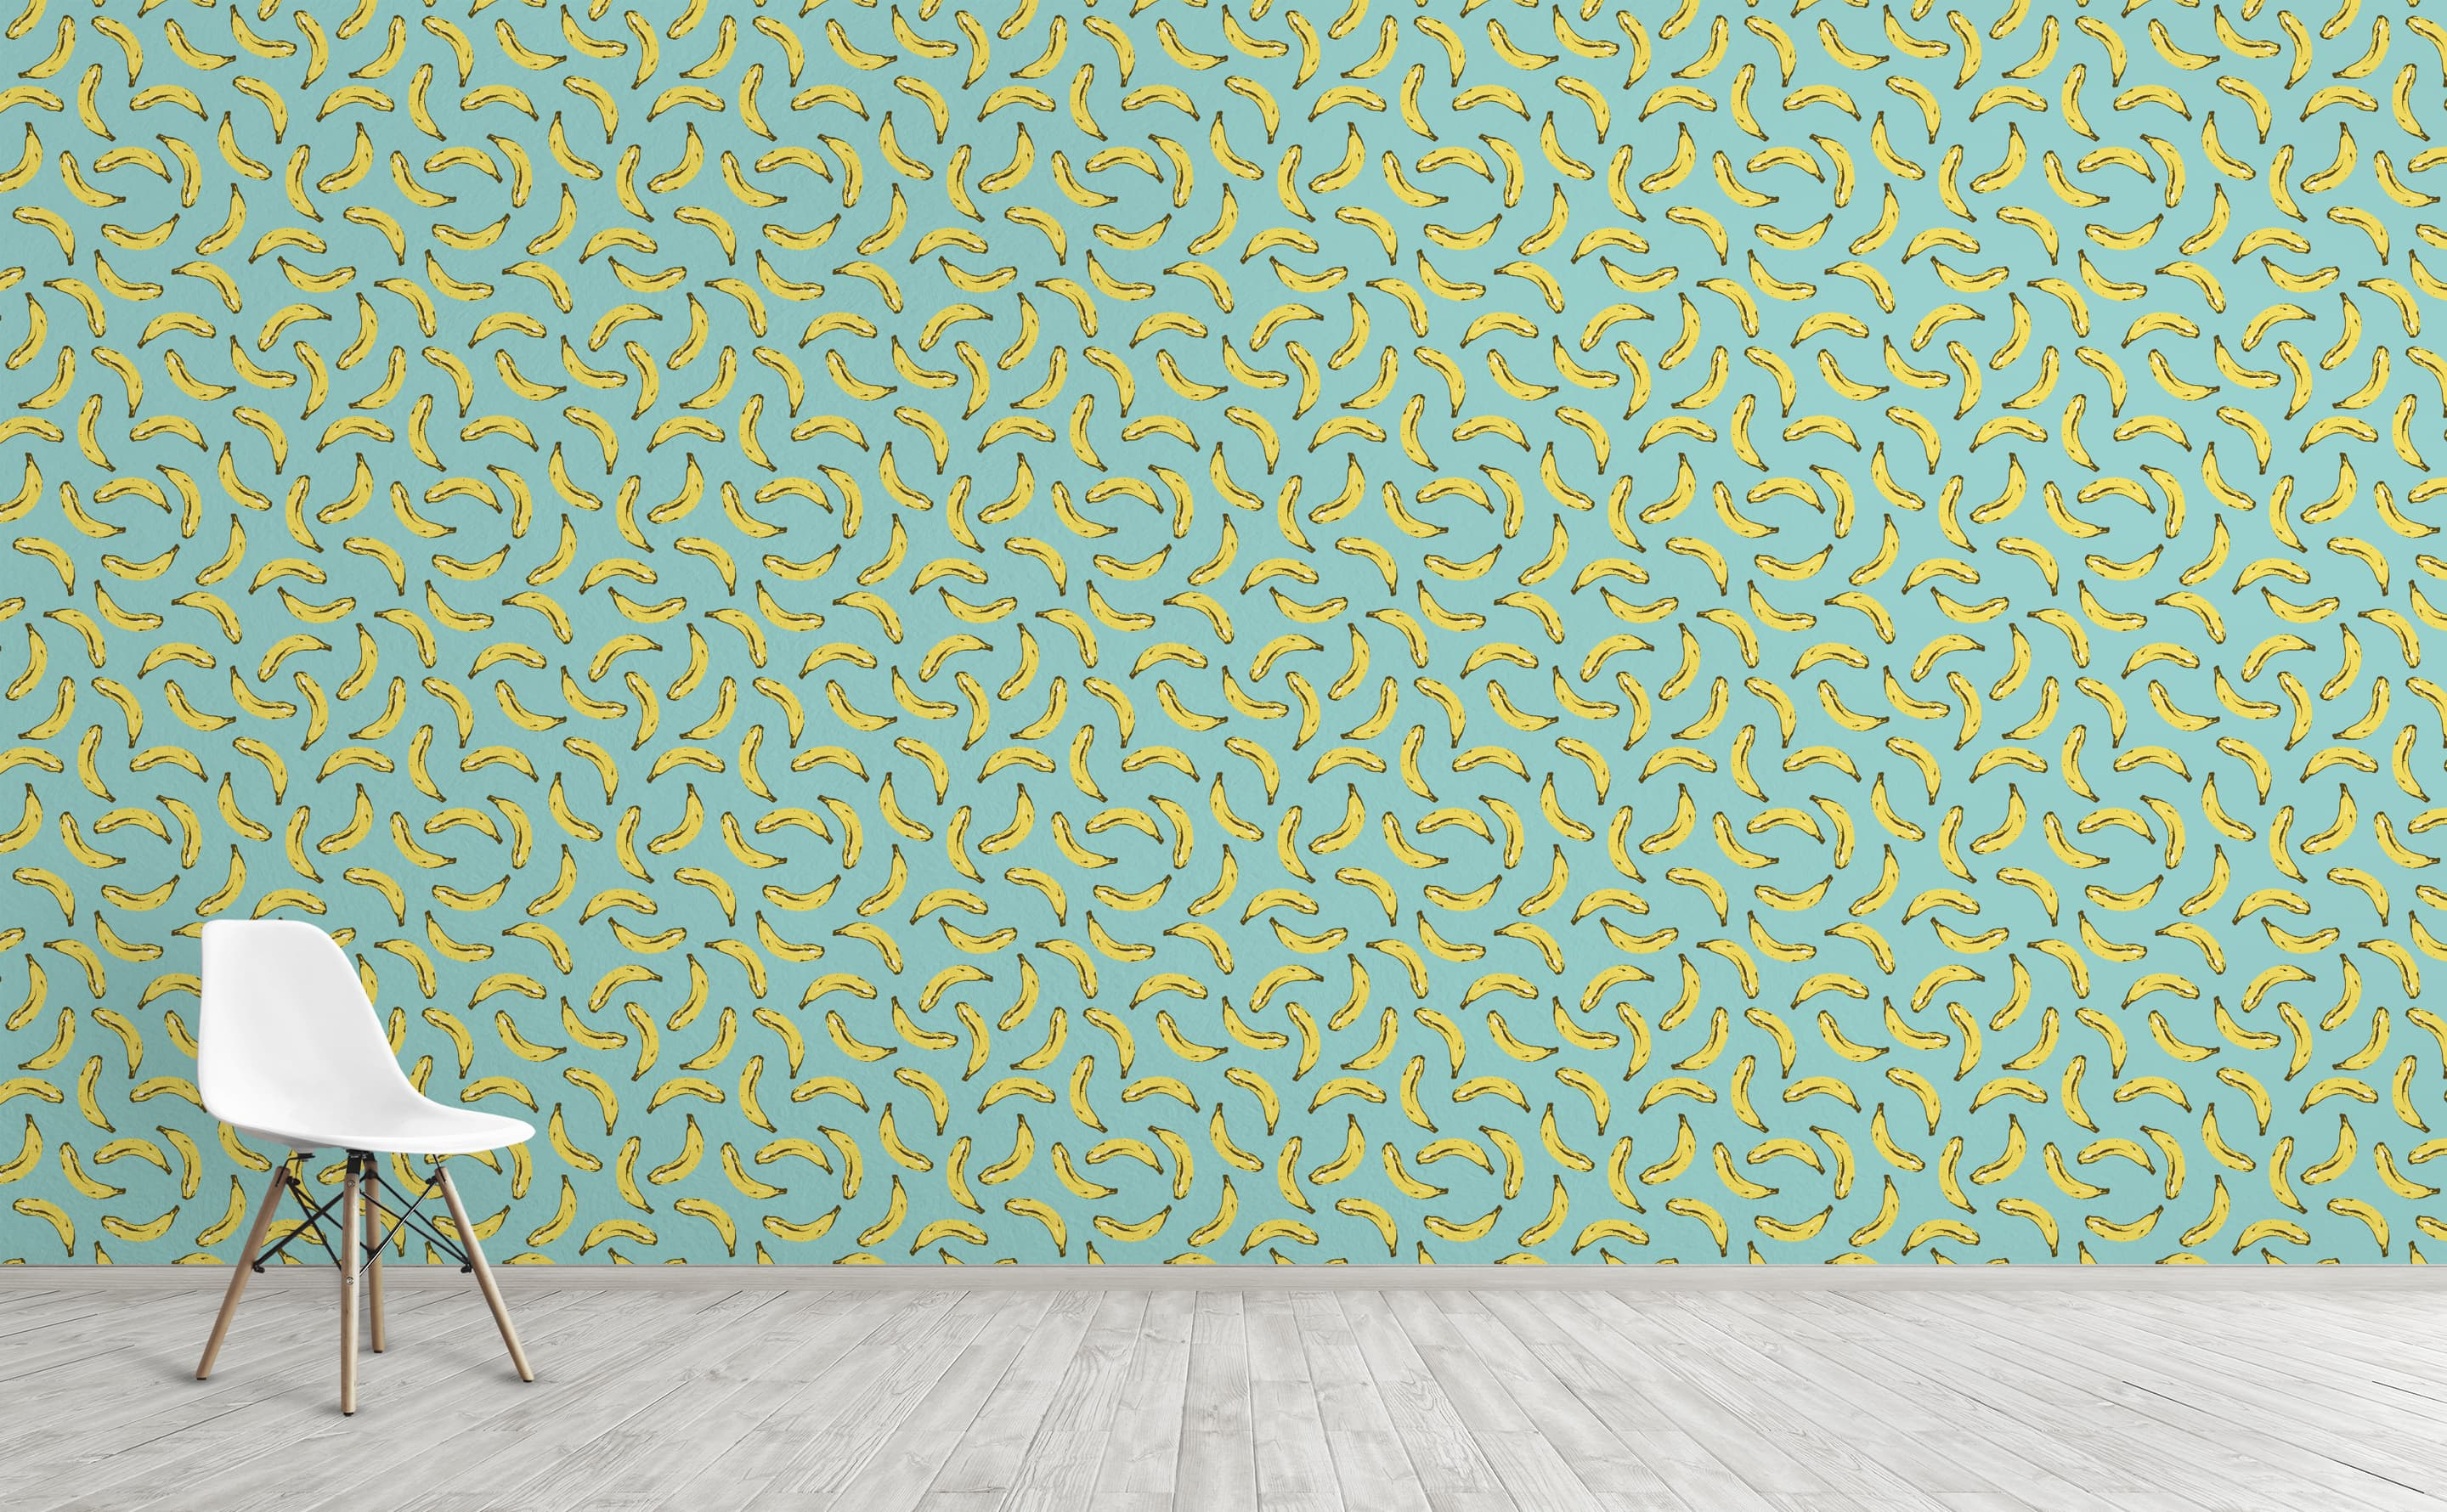 w0275 1s Velvet Bananas Removable Peel and Stick Wallpaper For Interior Walls 1